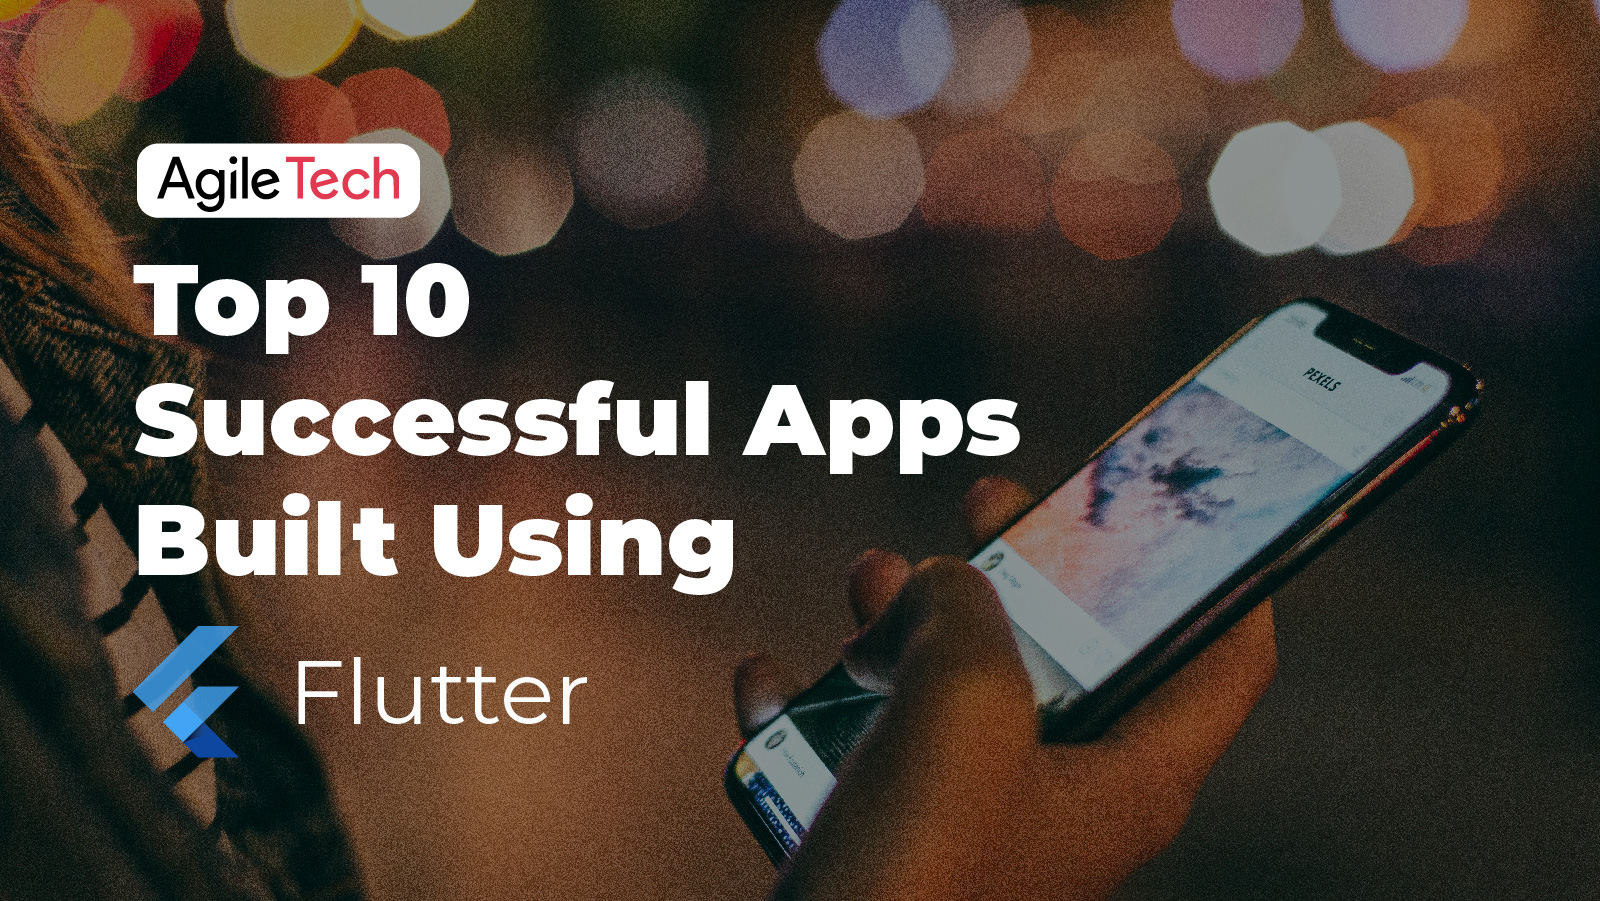 flutter apps examples, cross platform framework for iOS and Android, top successful apps built with flutter, mobile app development, agiletech